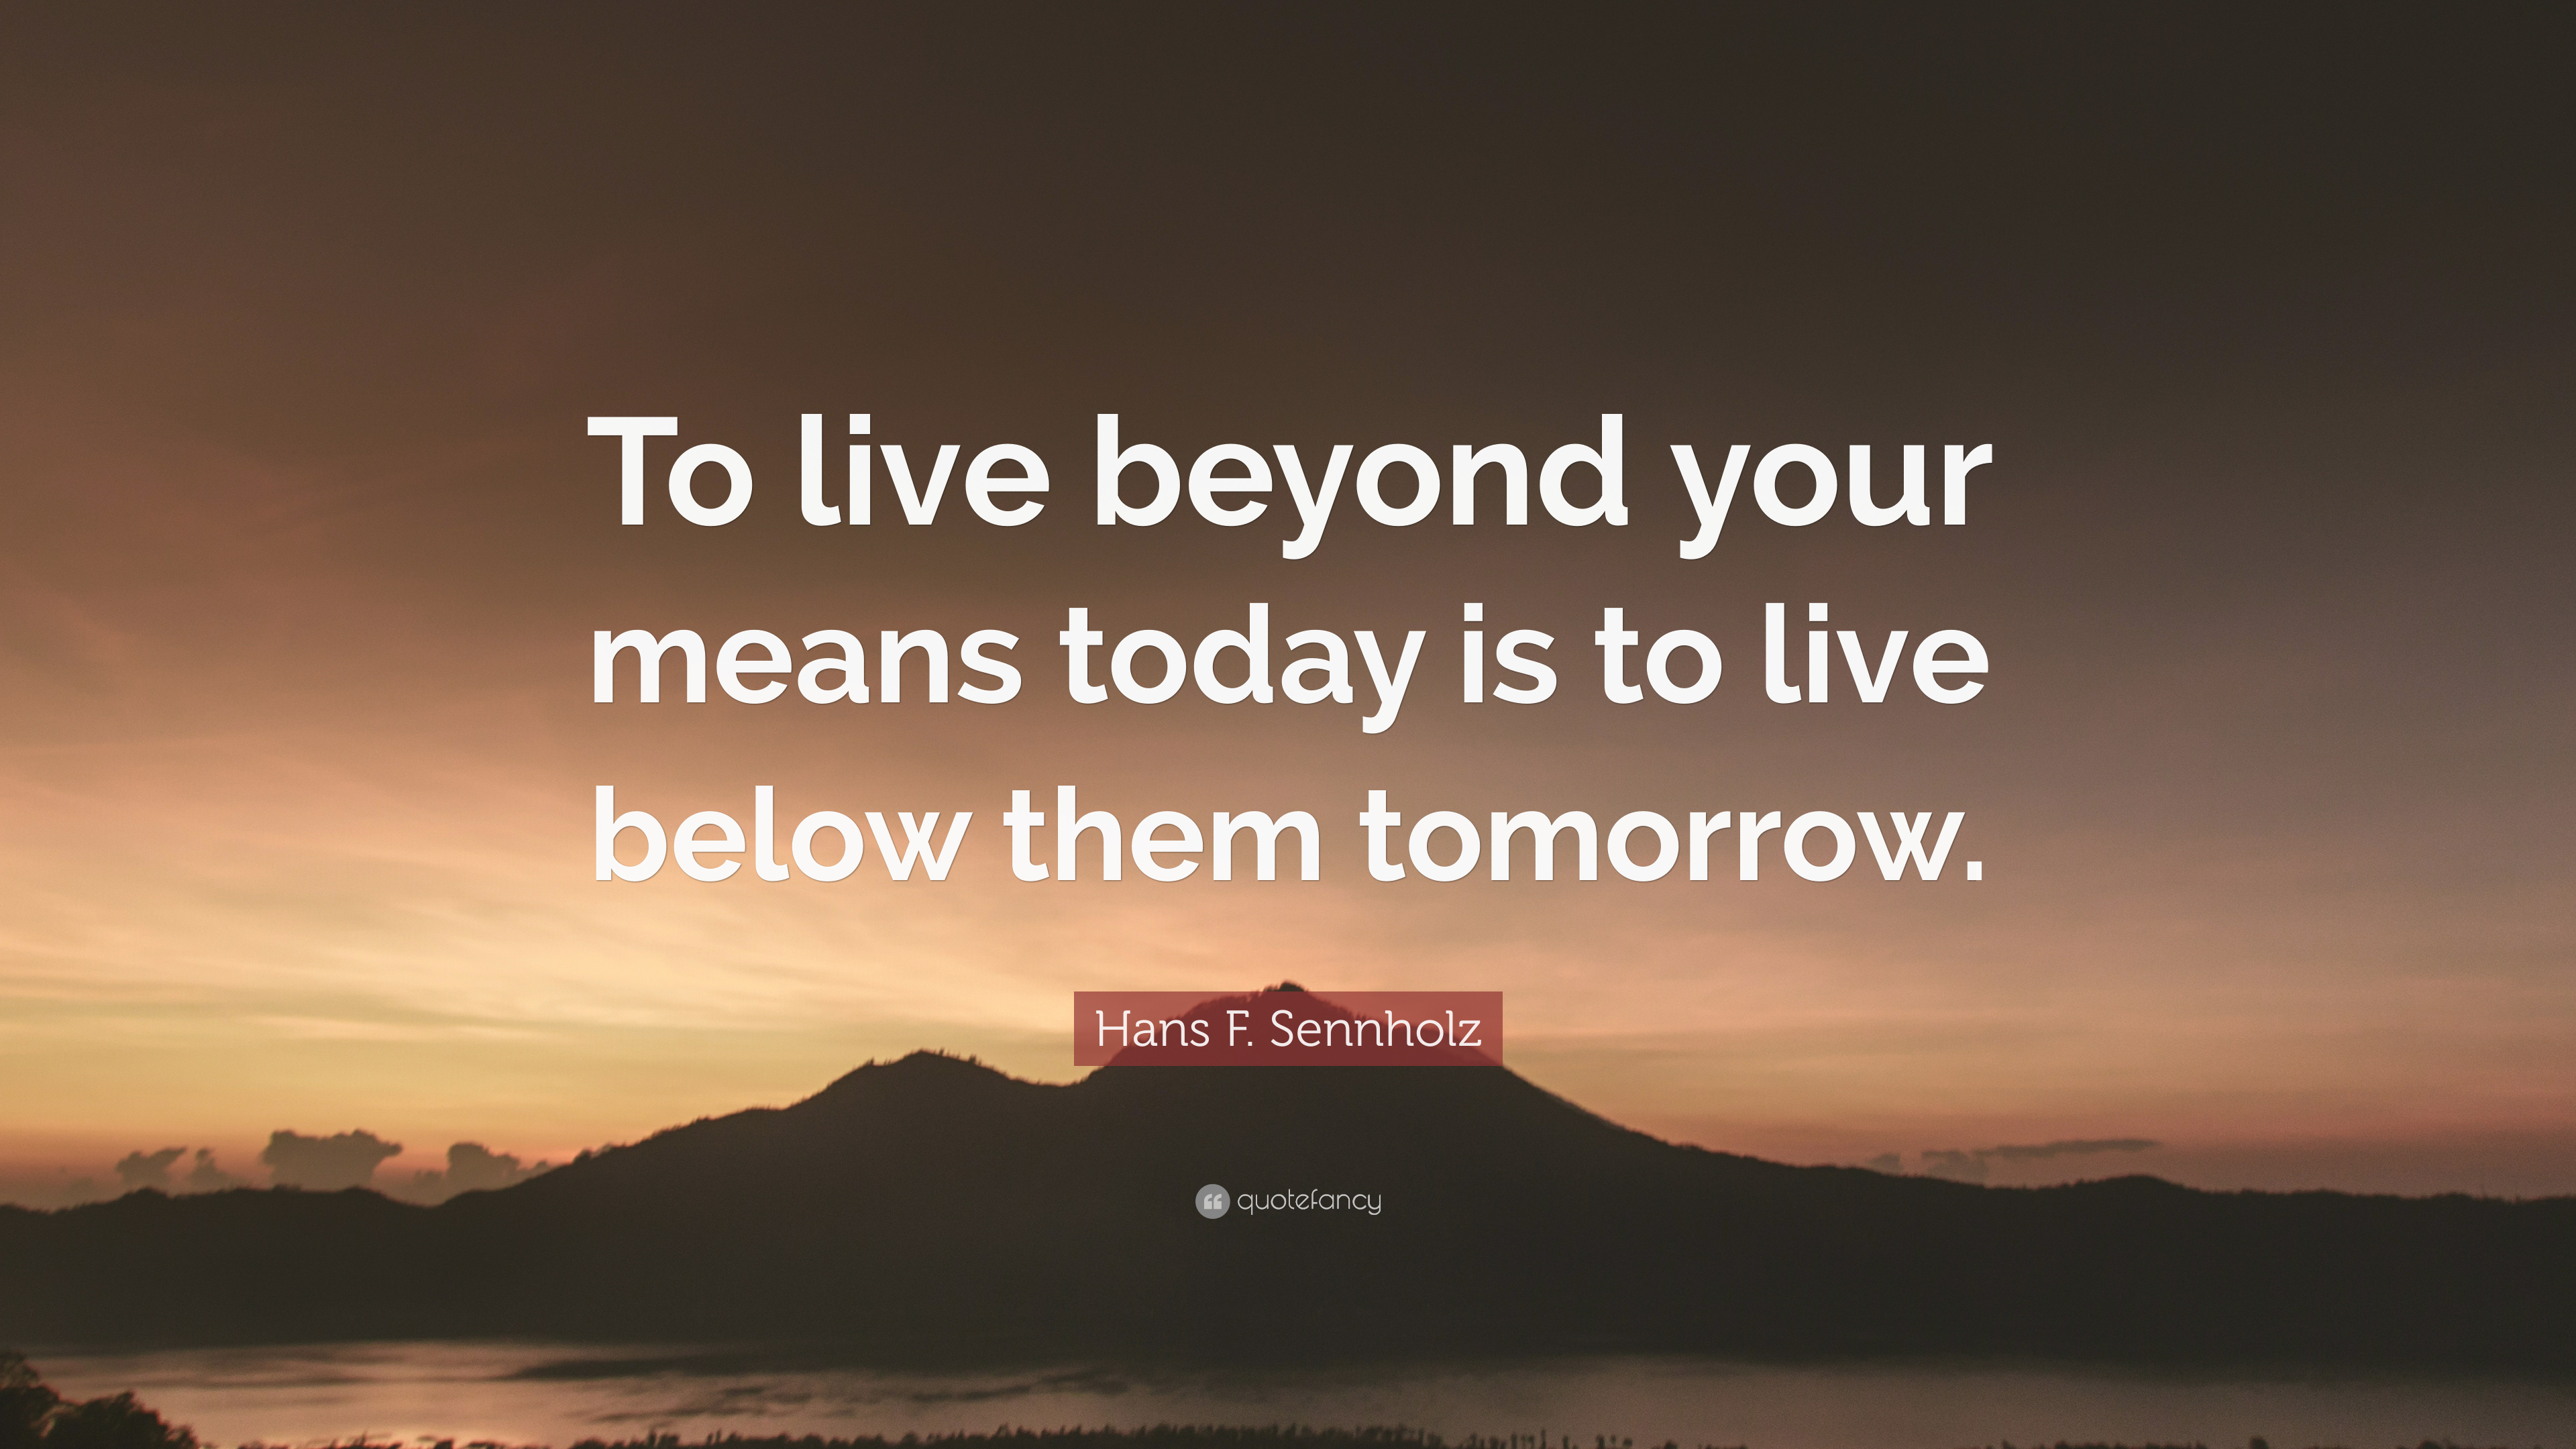 Hans F Sennholz Quote To Live Beyond Your Means Today Is To Live